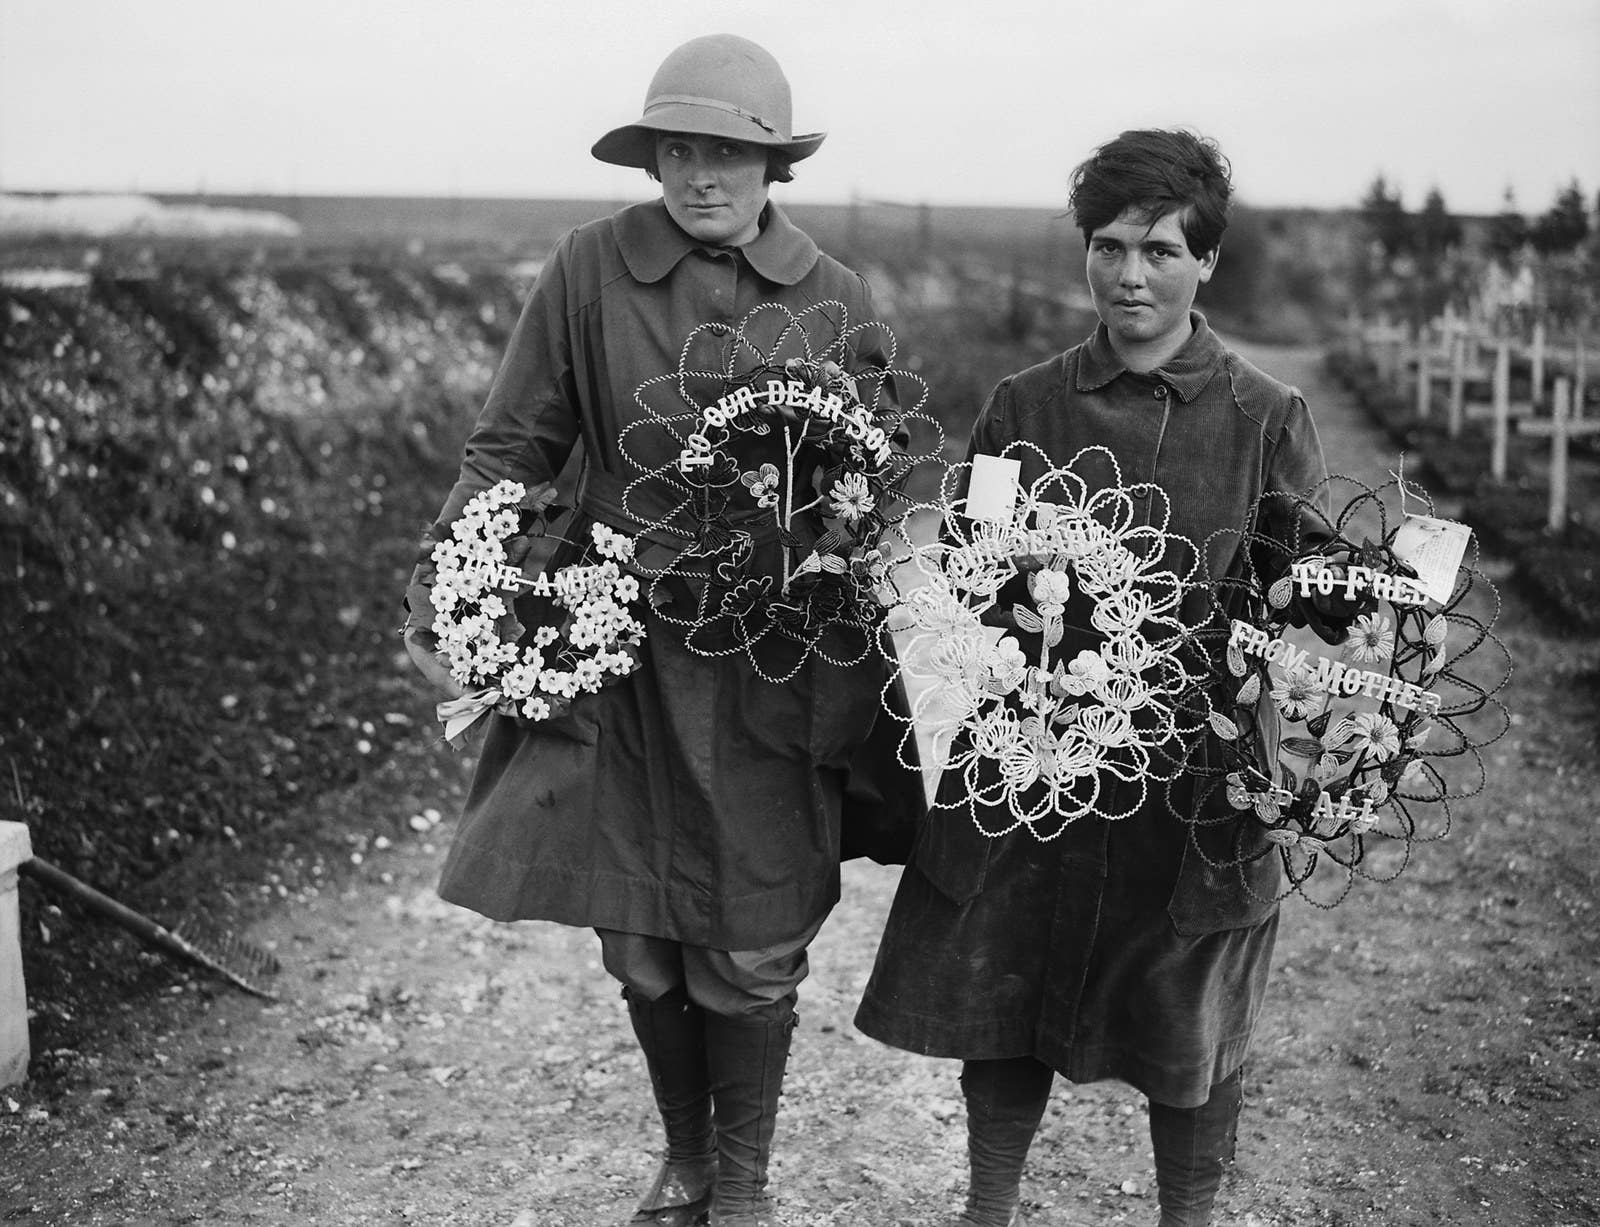 Two members of the Women's Auxiliary Army Corps carrying wreaths to place on the graves of British soldiers buried at Abbeville, France, 1918.